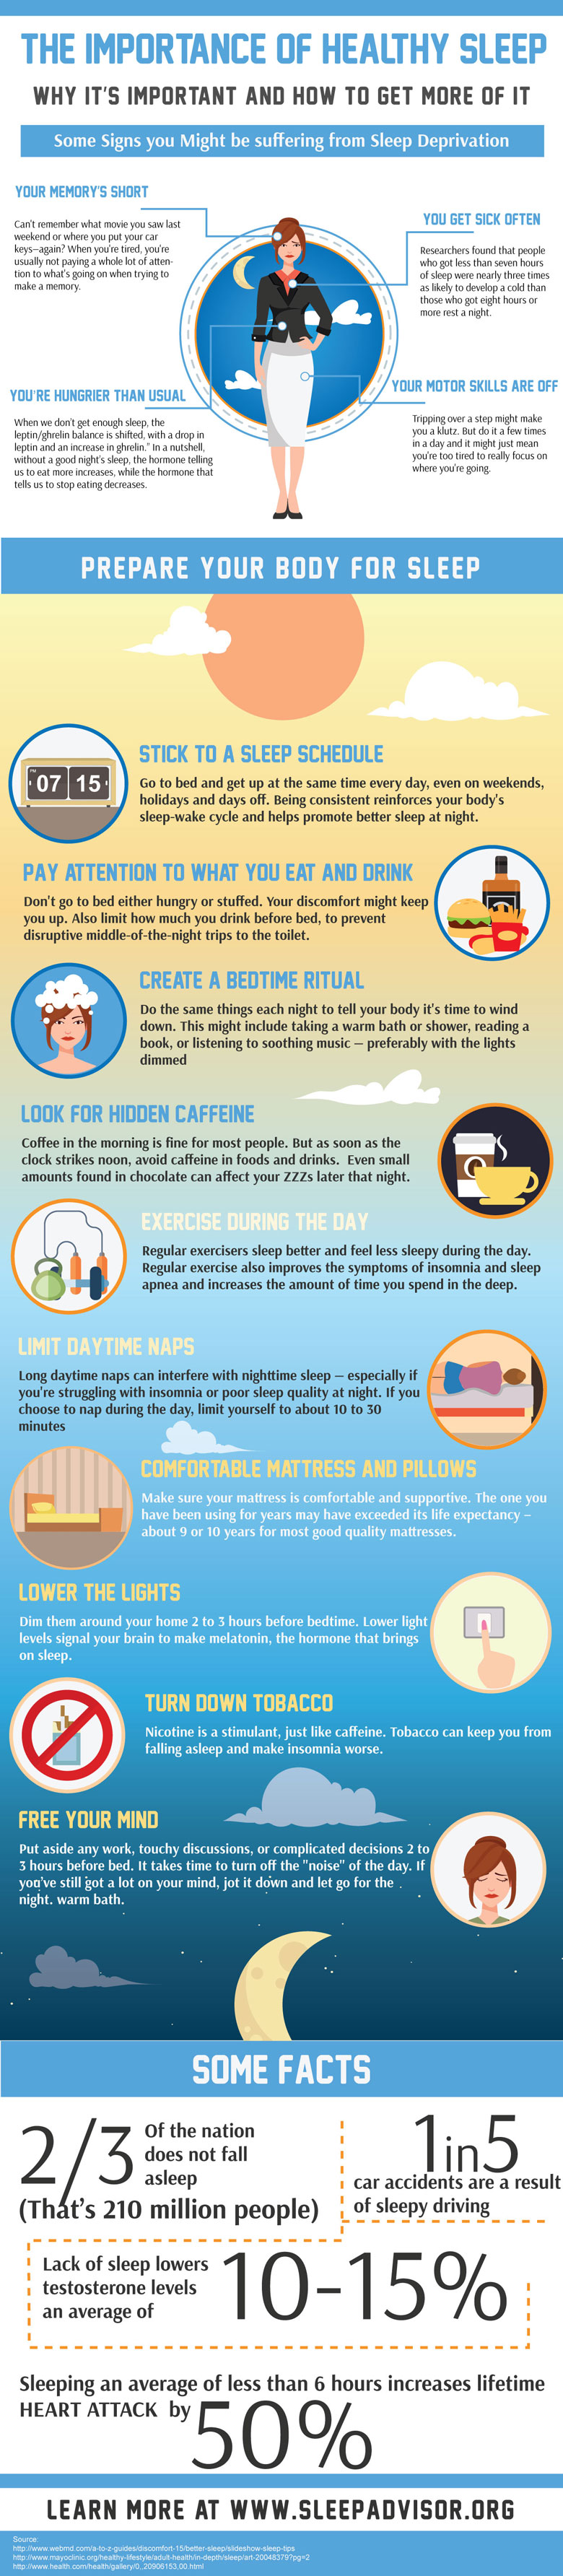 The importance of healthy sleep